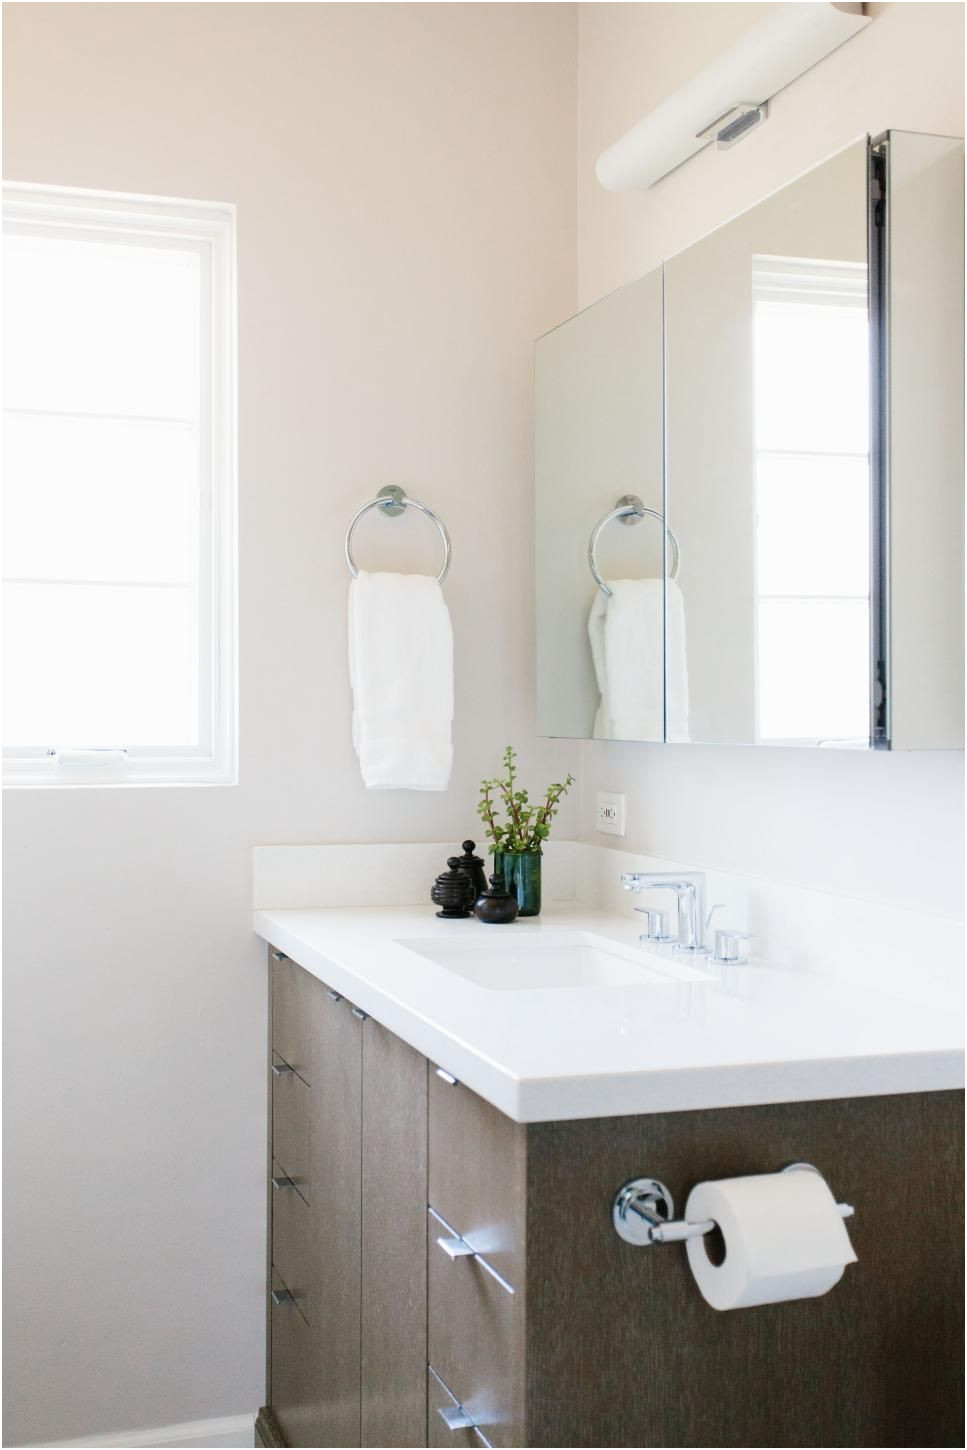 Mirrored Bathroom Cabinet with Shelf Elegant This Double Two Sided Mirrored Medicine Cabinet is Sleek and